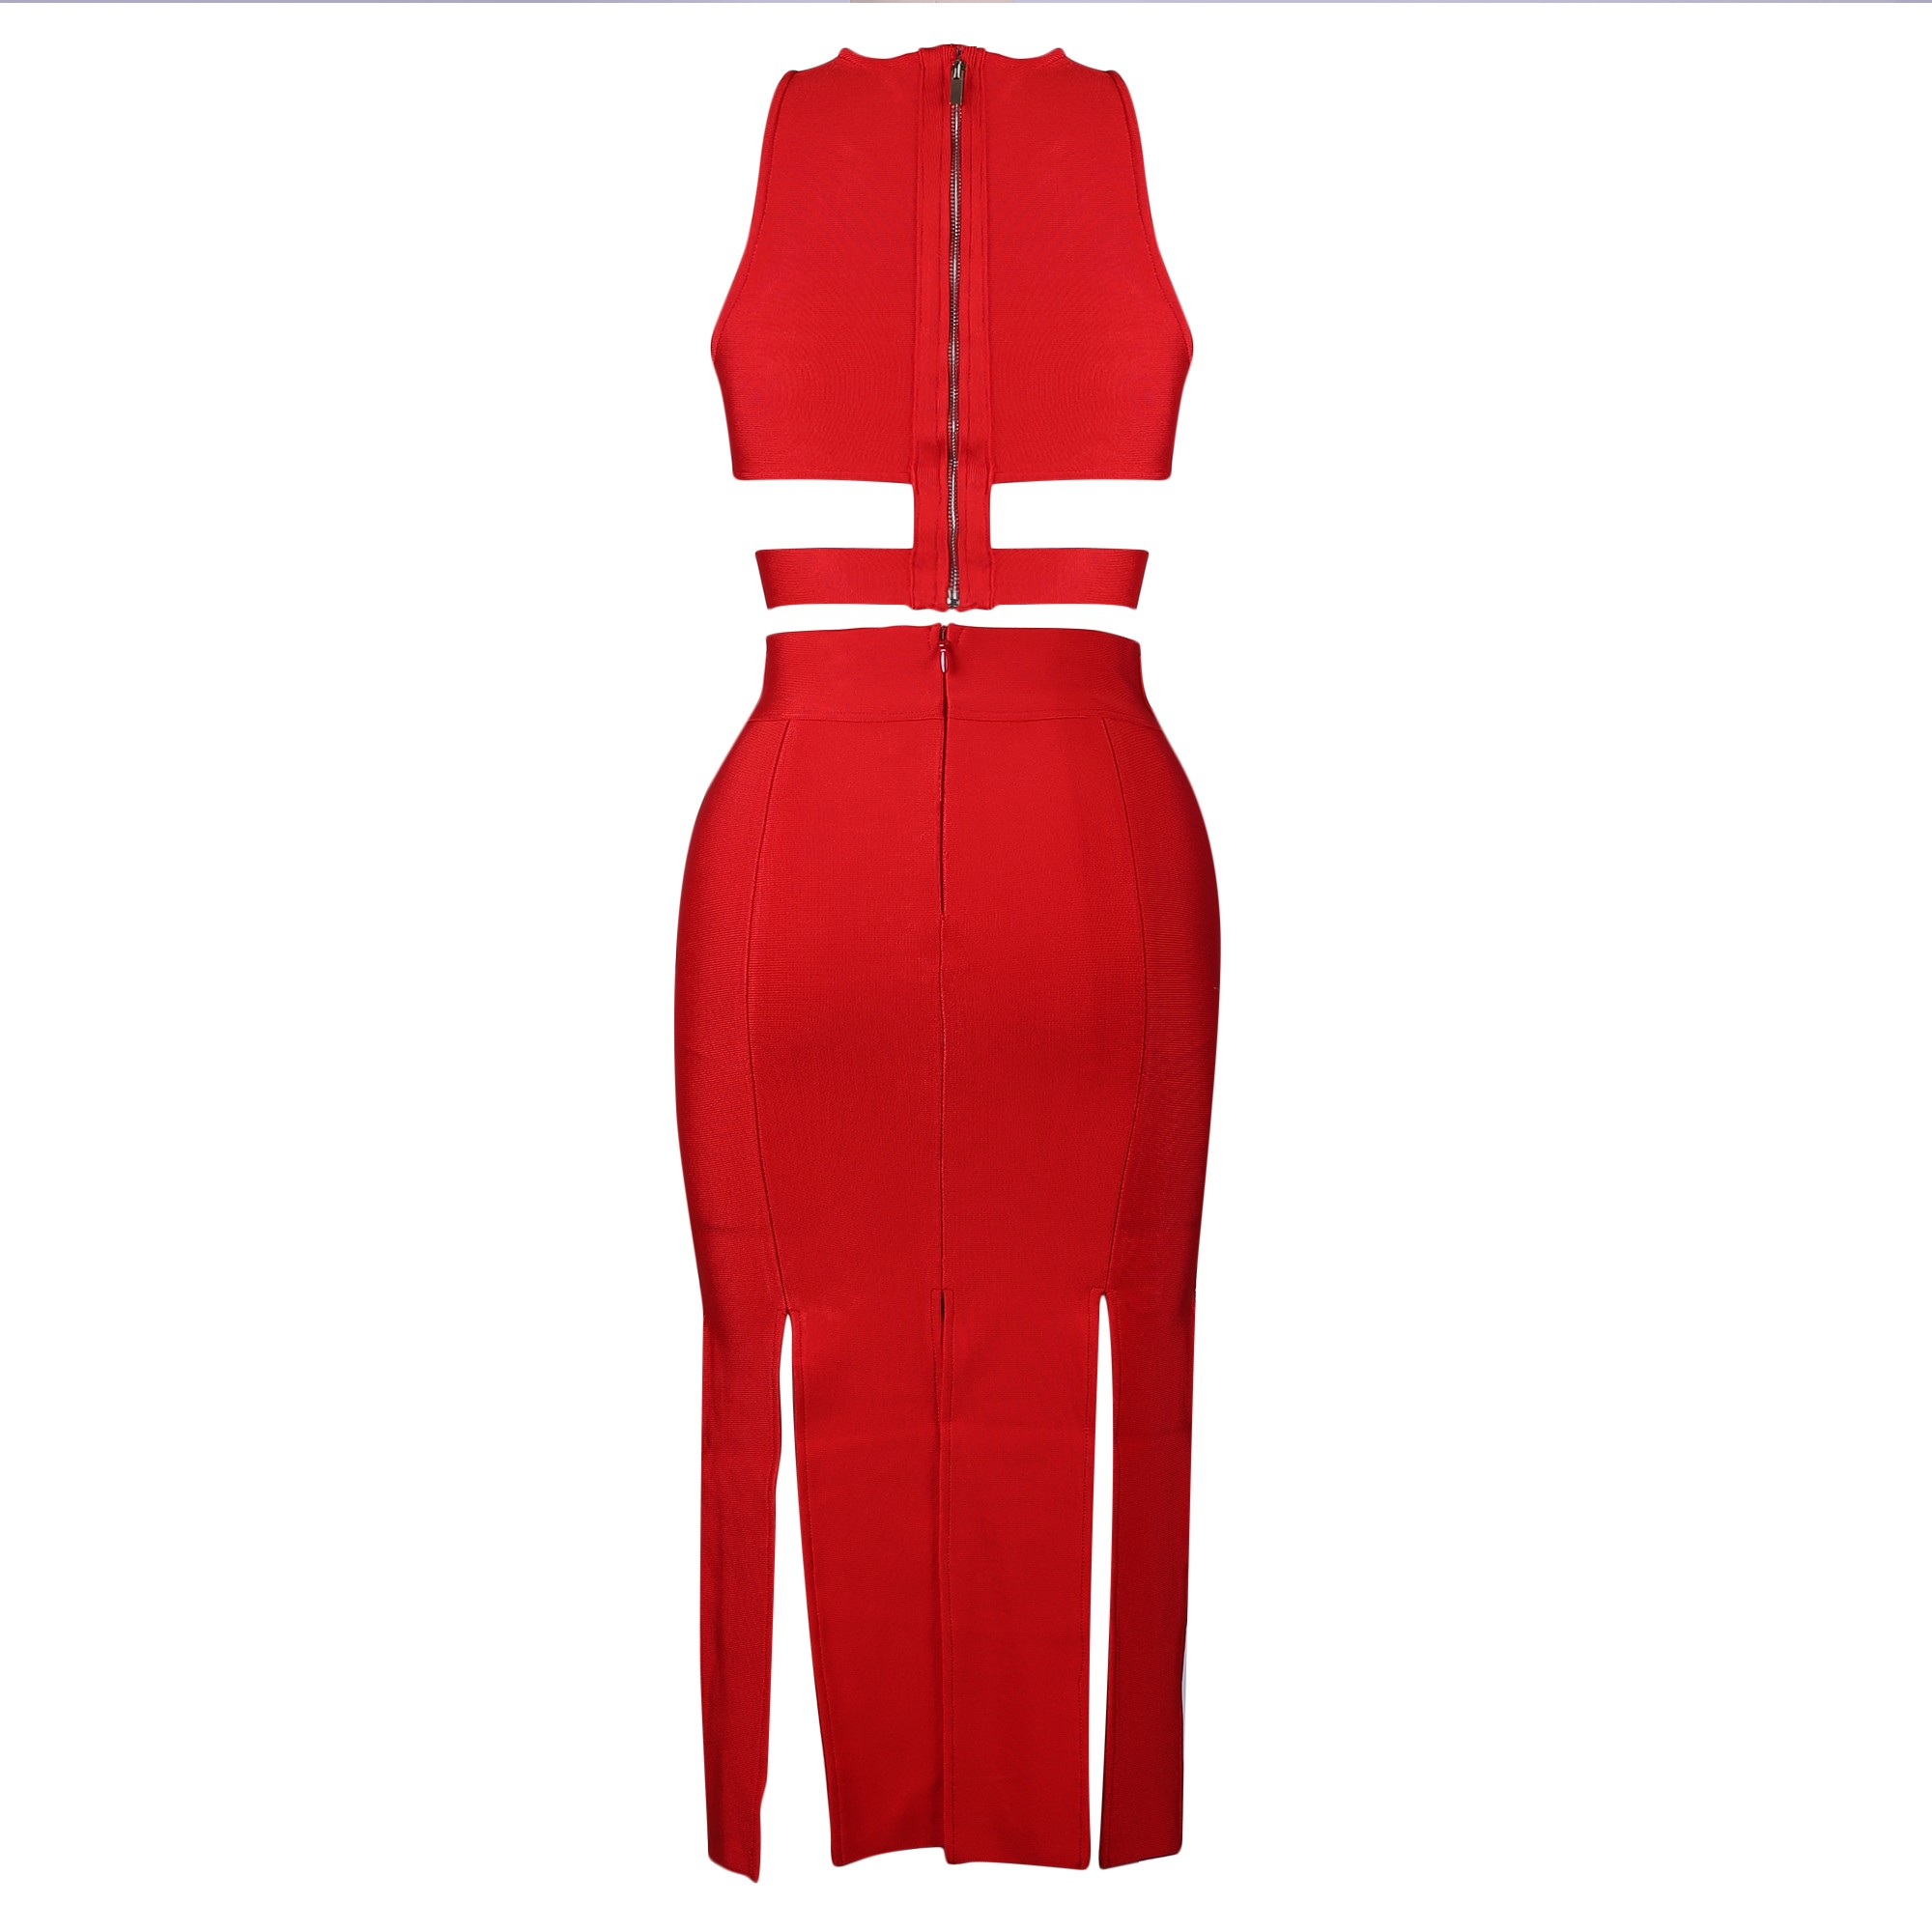 Rayon - Red Round Neck Sleeveless 2 Piece Tassels High Quality Bandage Dress HJ532-Red